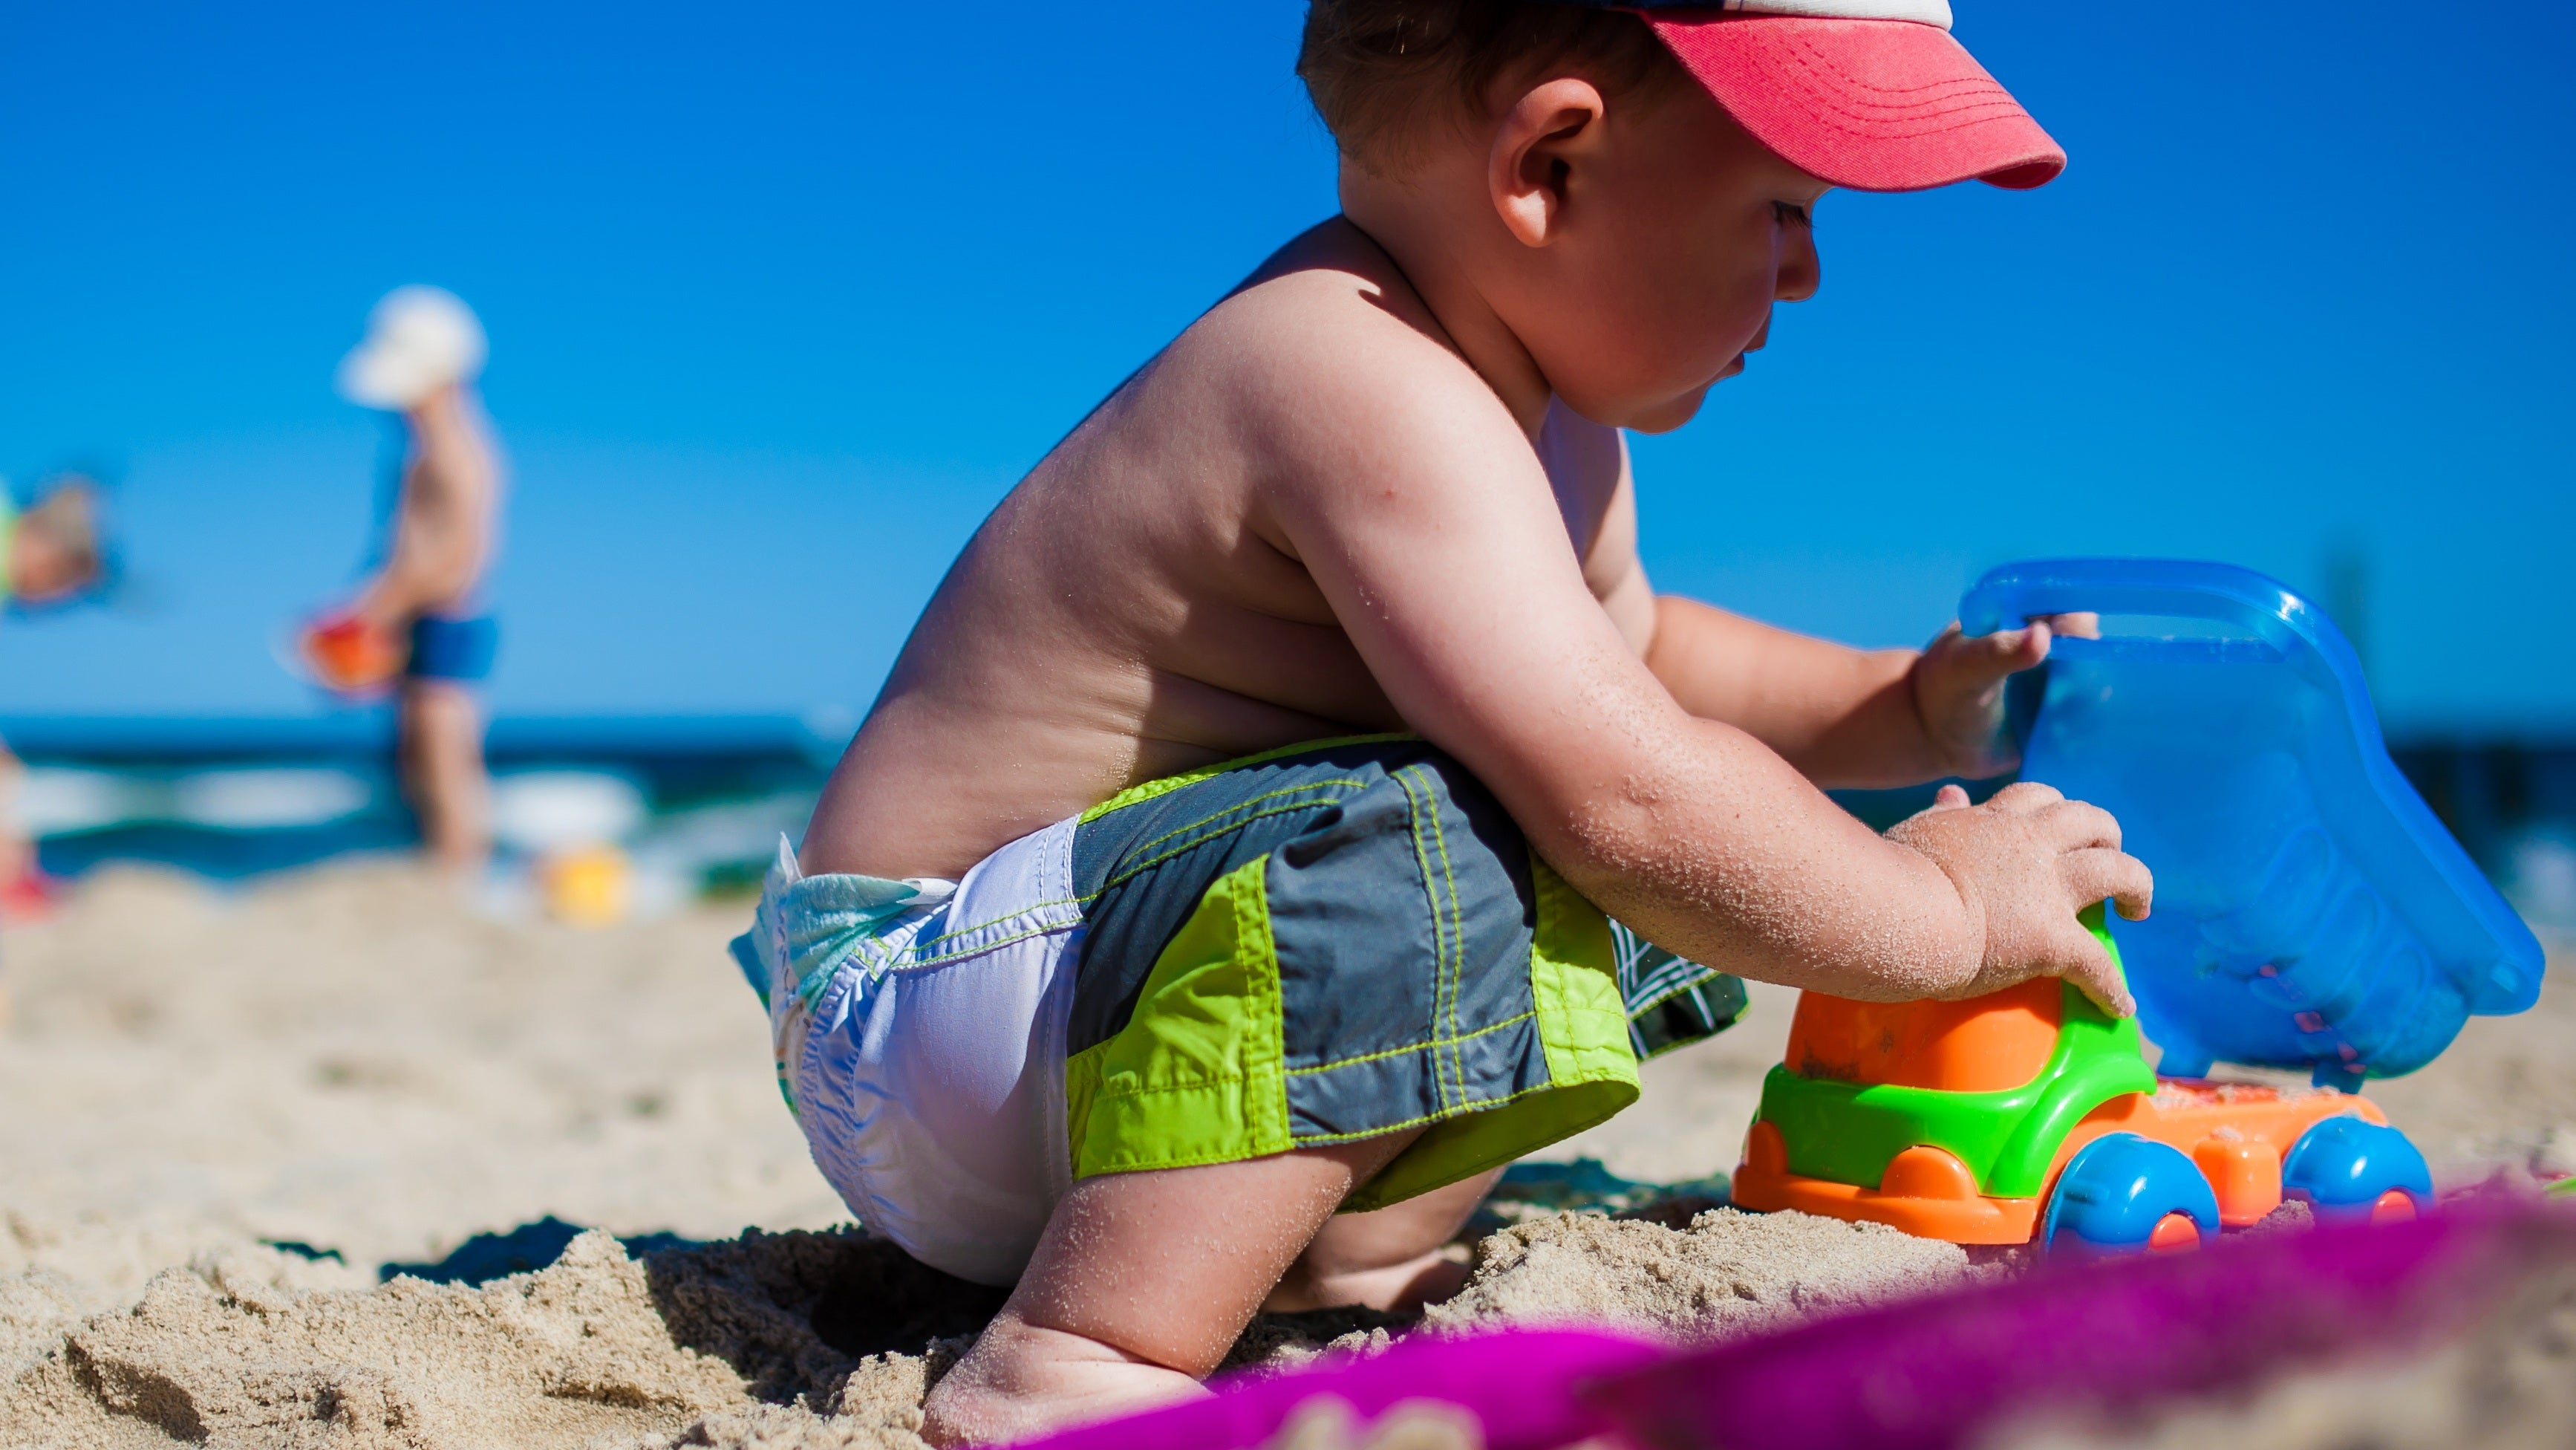 Before You Have Kids The Beach Is Easy Amble Down With Nothing But A Towel And Bottle Of Water Maybe Bring An Umbrella Stick It In Sand